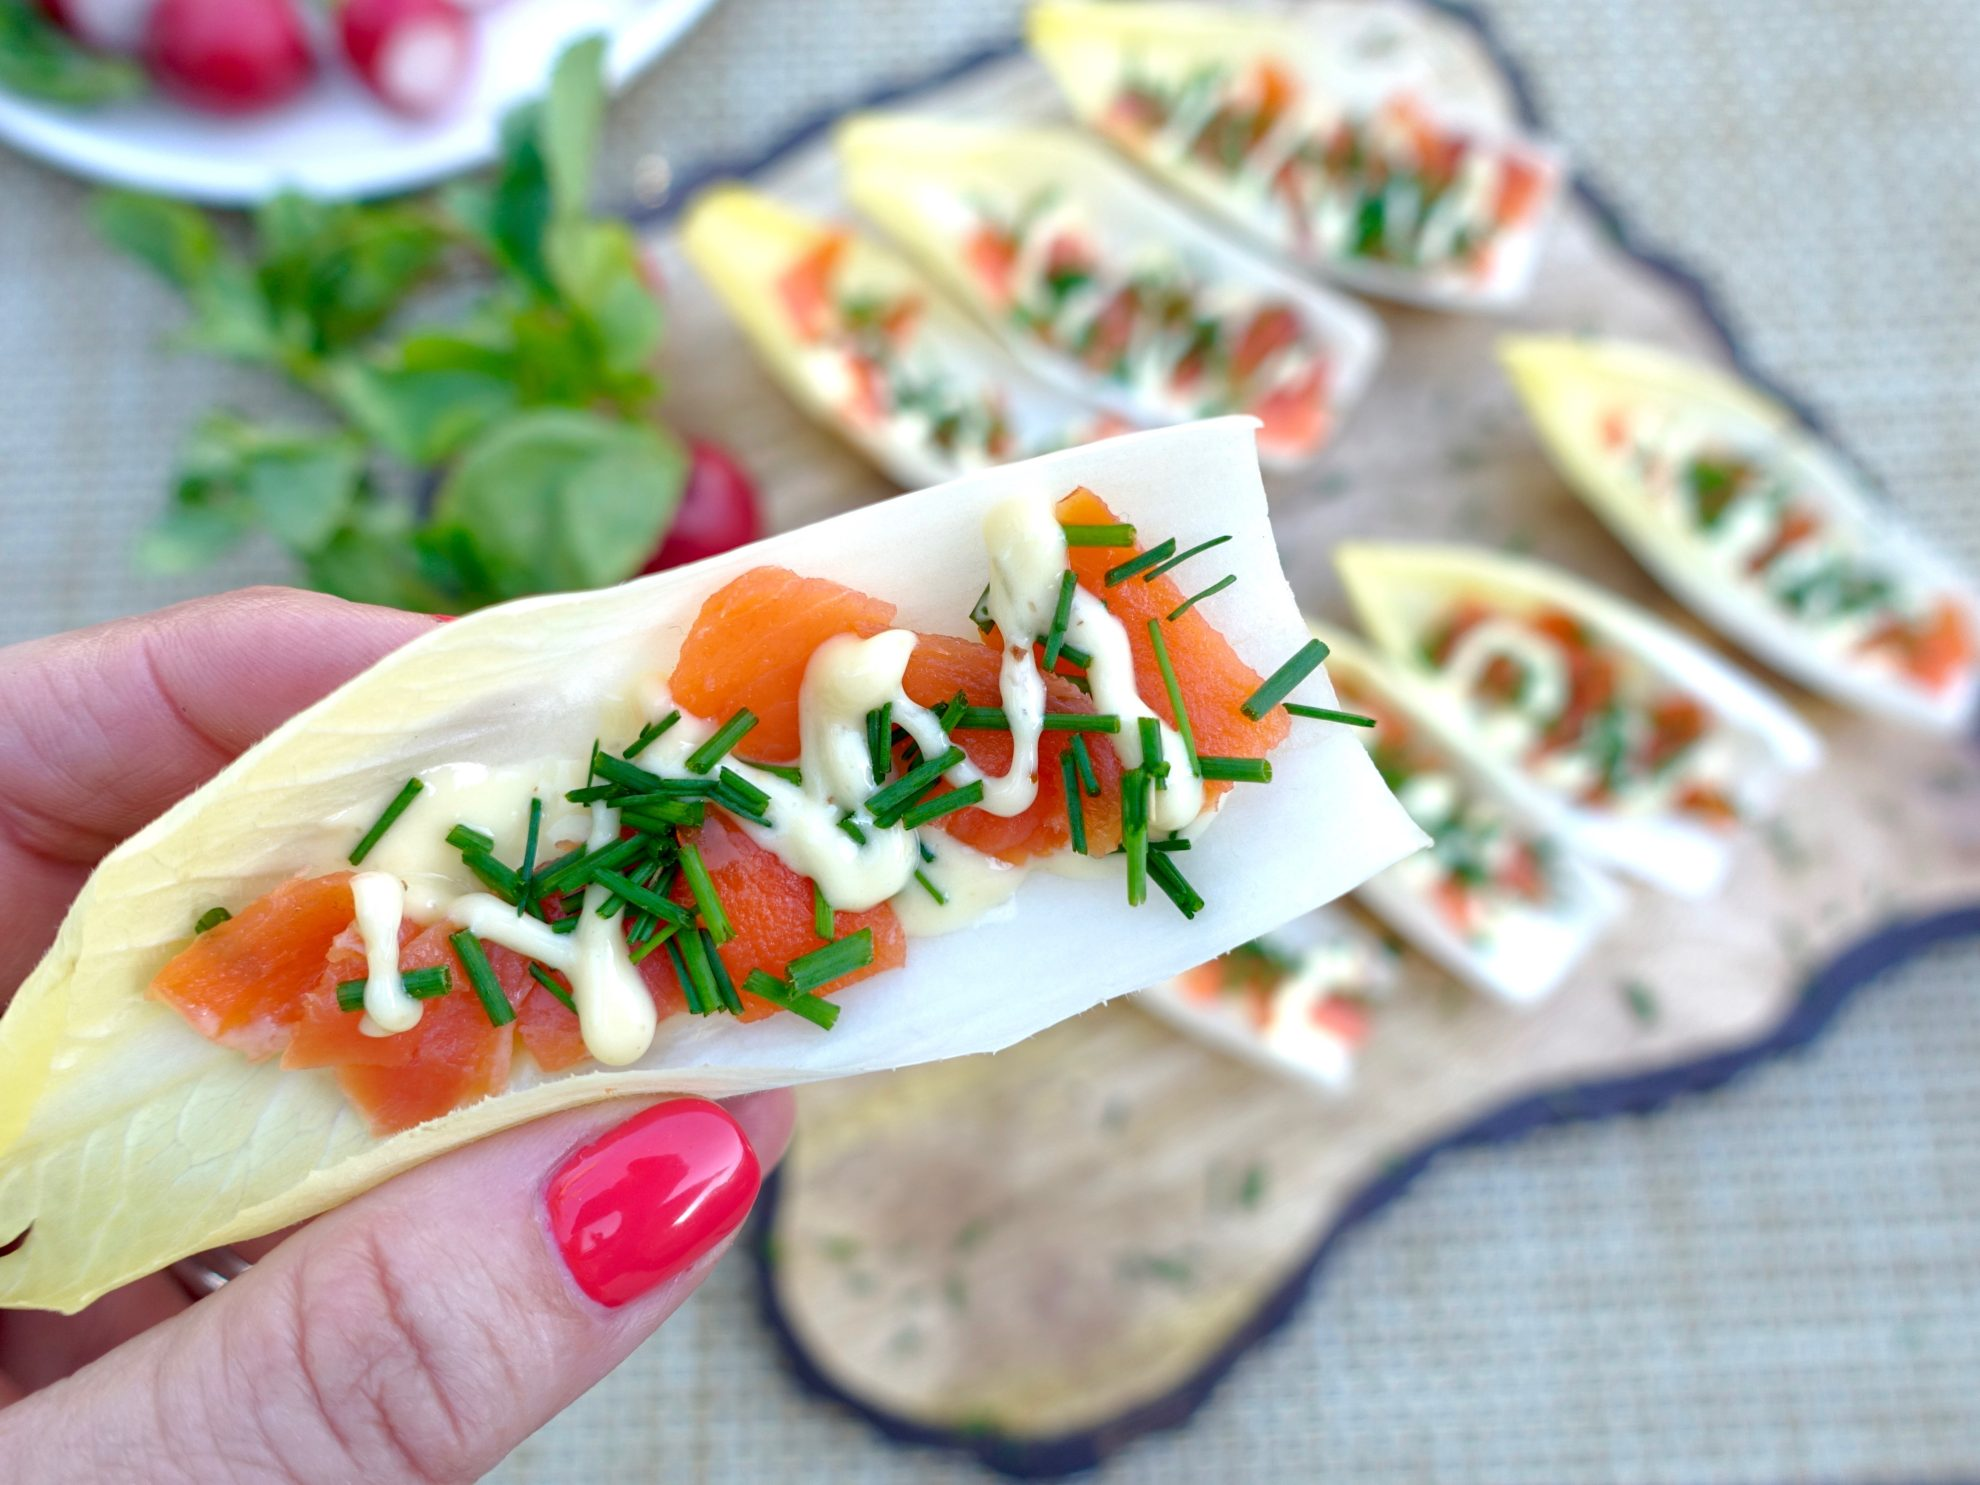 Endive with Smoked Salmon Finger 2